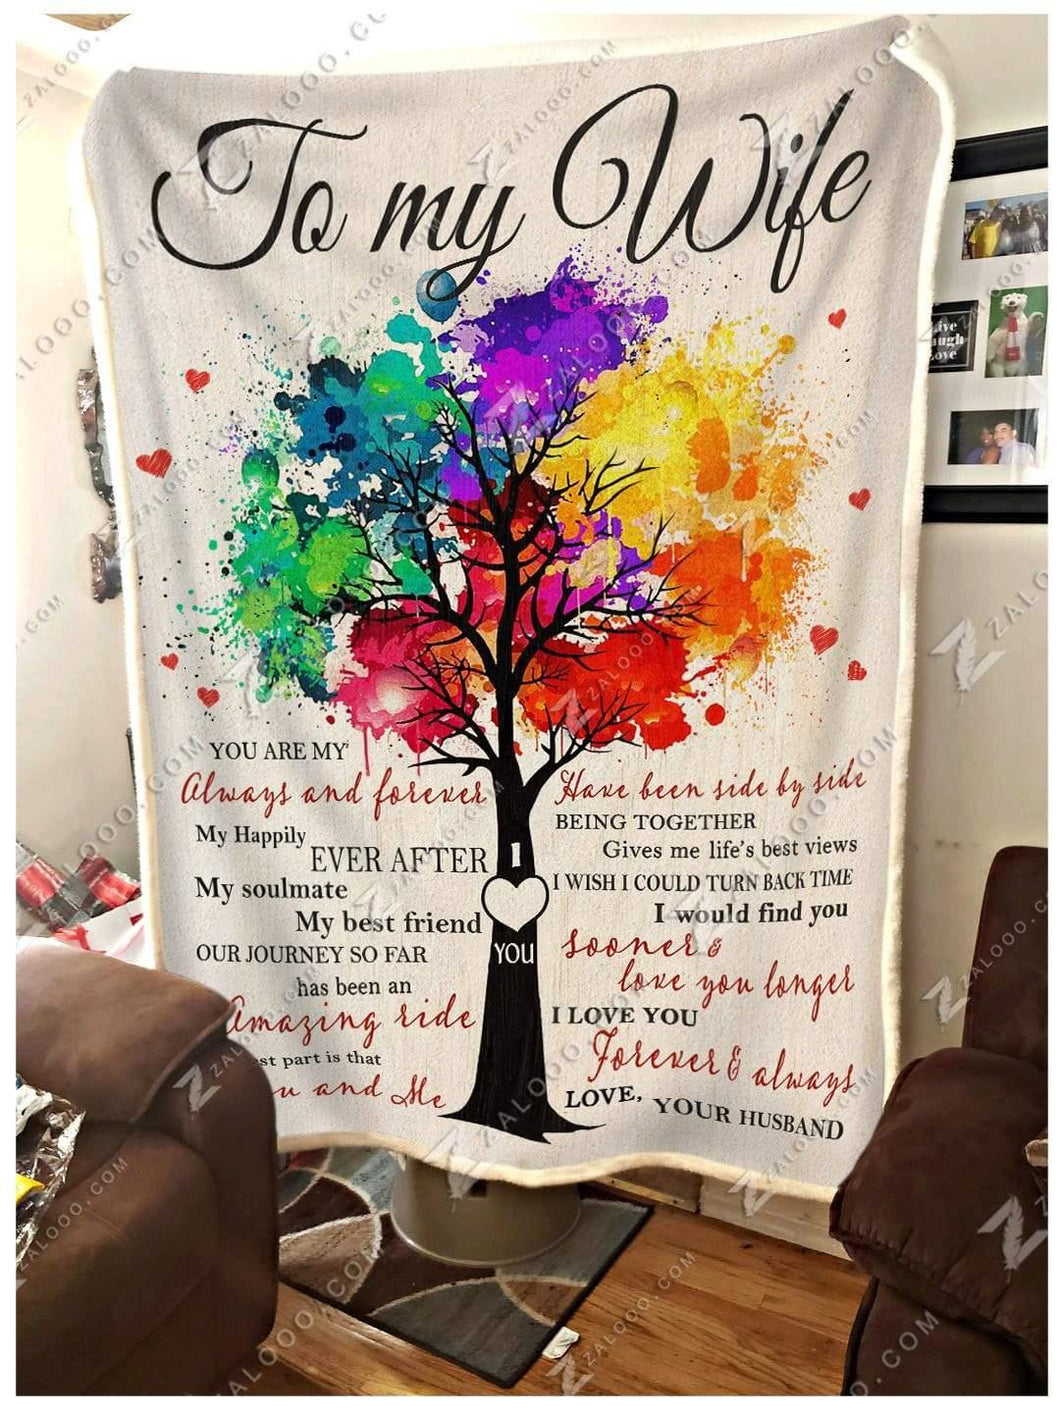 Blanket Family To My Wife You & Me - Zalooo.com Custom Wall Art Canvas